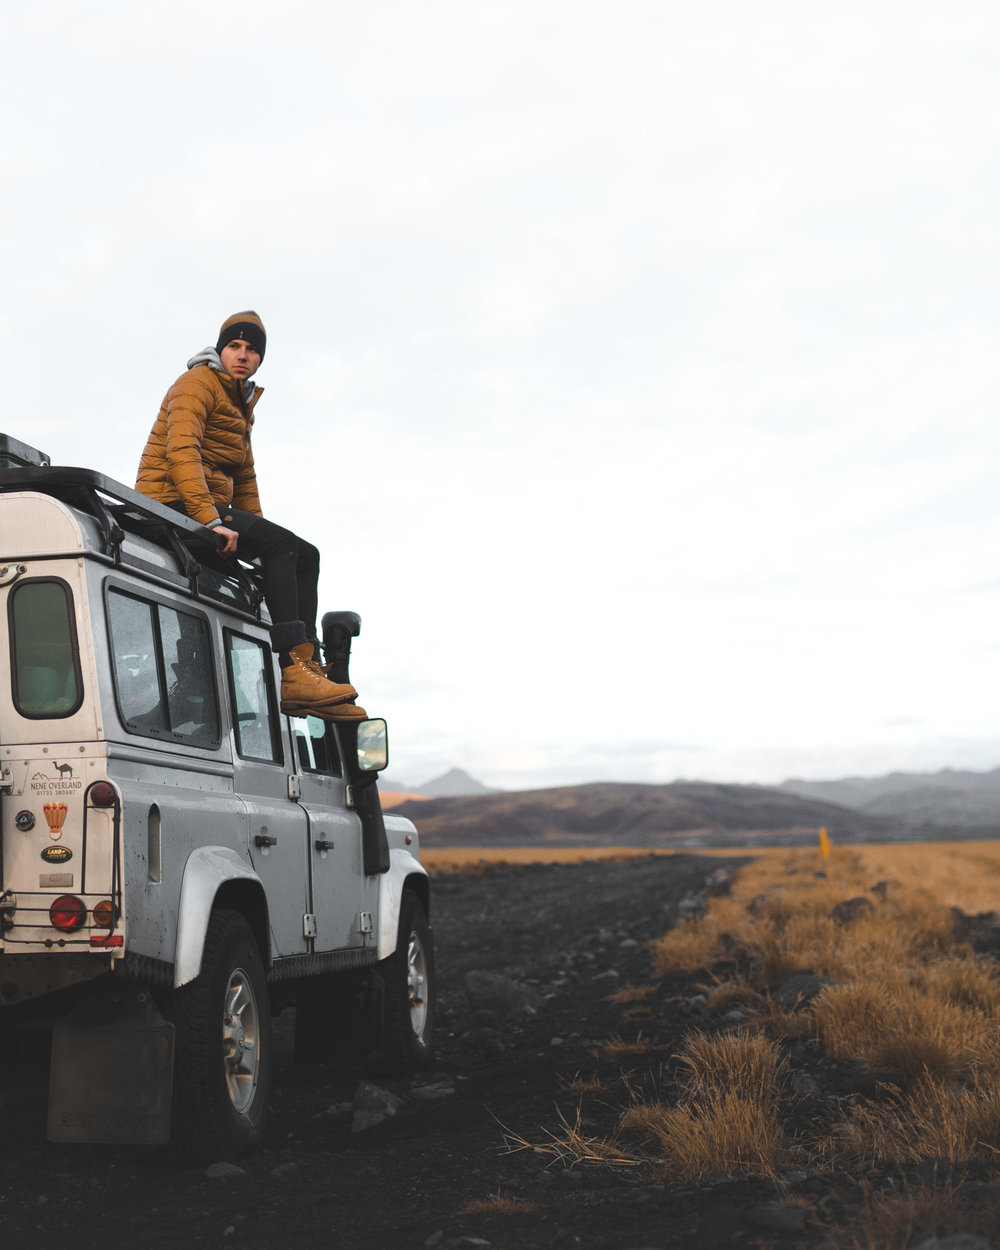 Joe Shutter on his Land Rover Defender